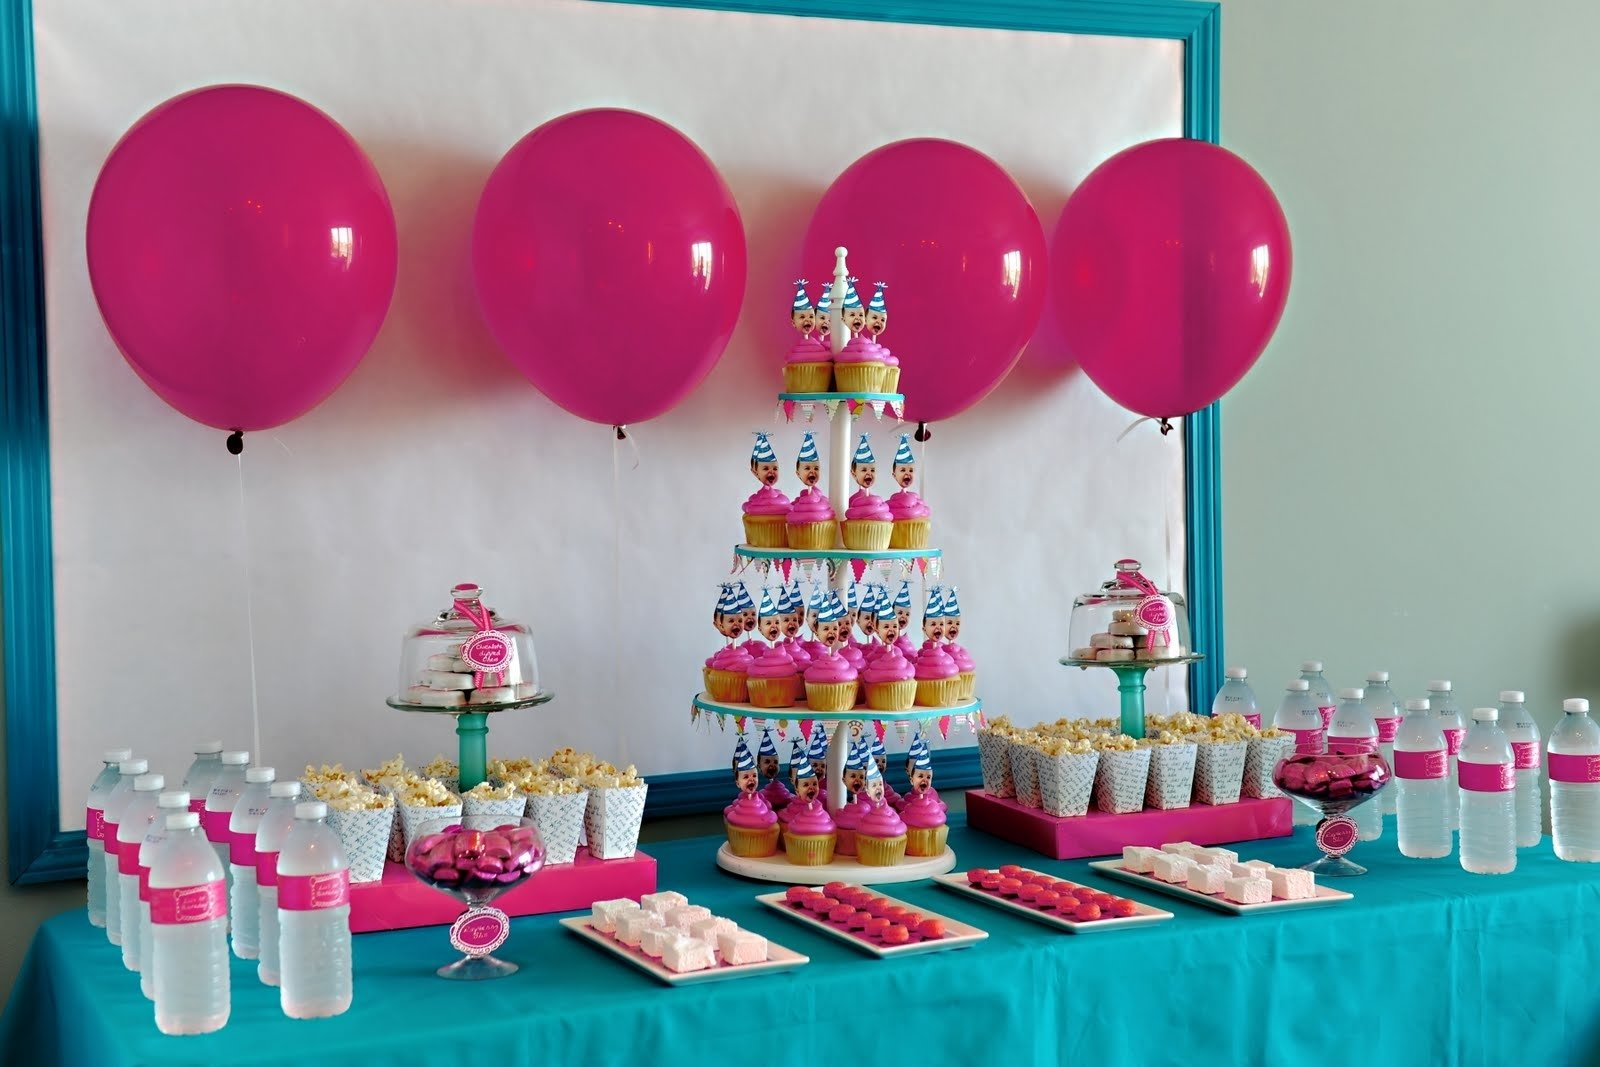 10 Most Recommended 3 Yr Old Birthday Ideas Themes Baby 1 Year Party